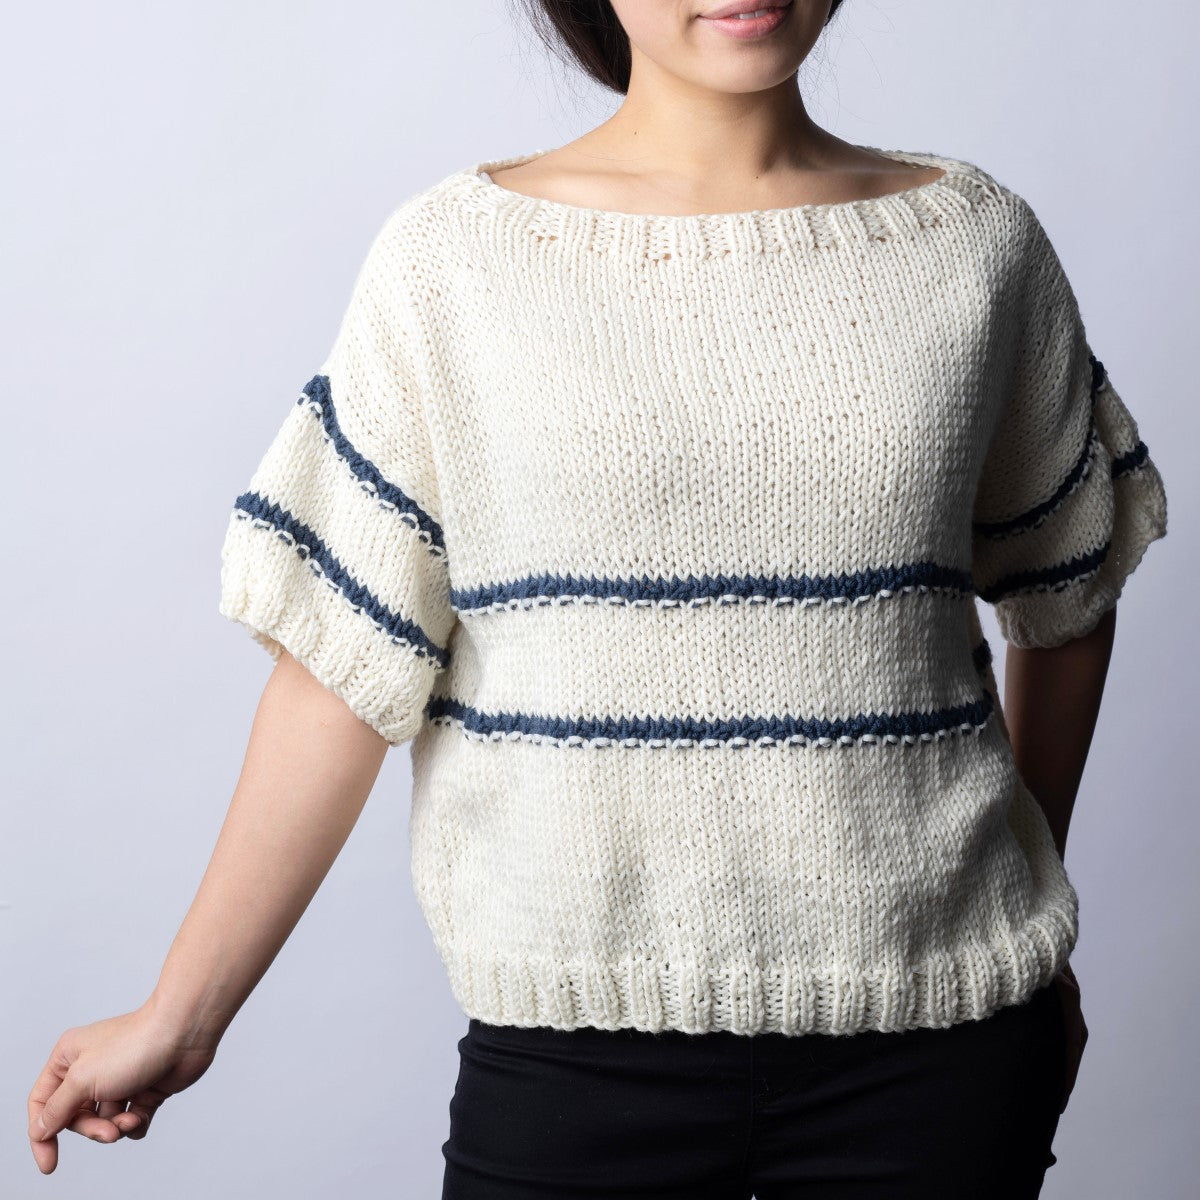 Striped Boat Neck Top Knitting Kit